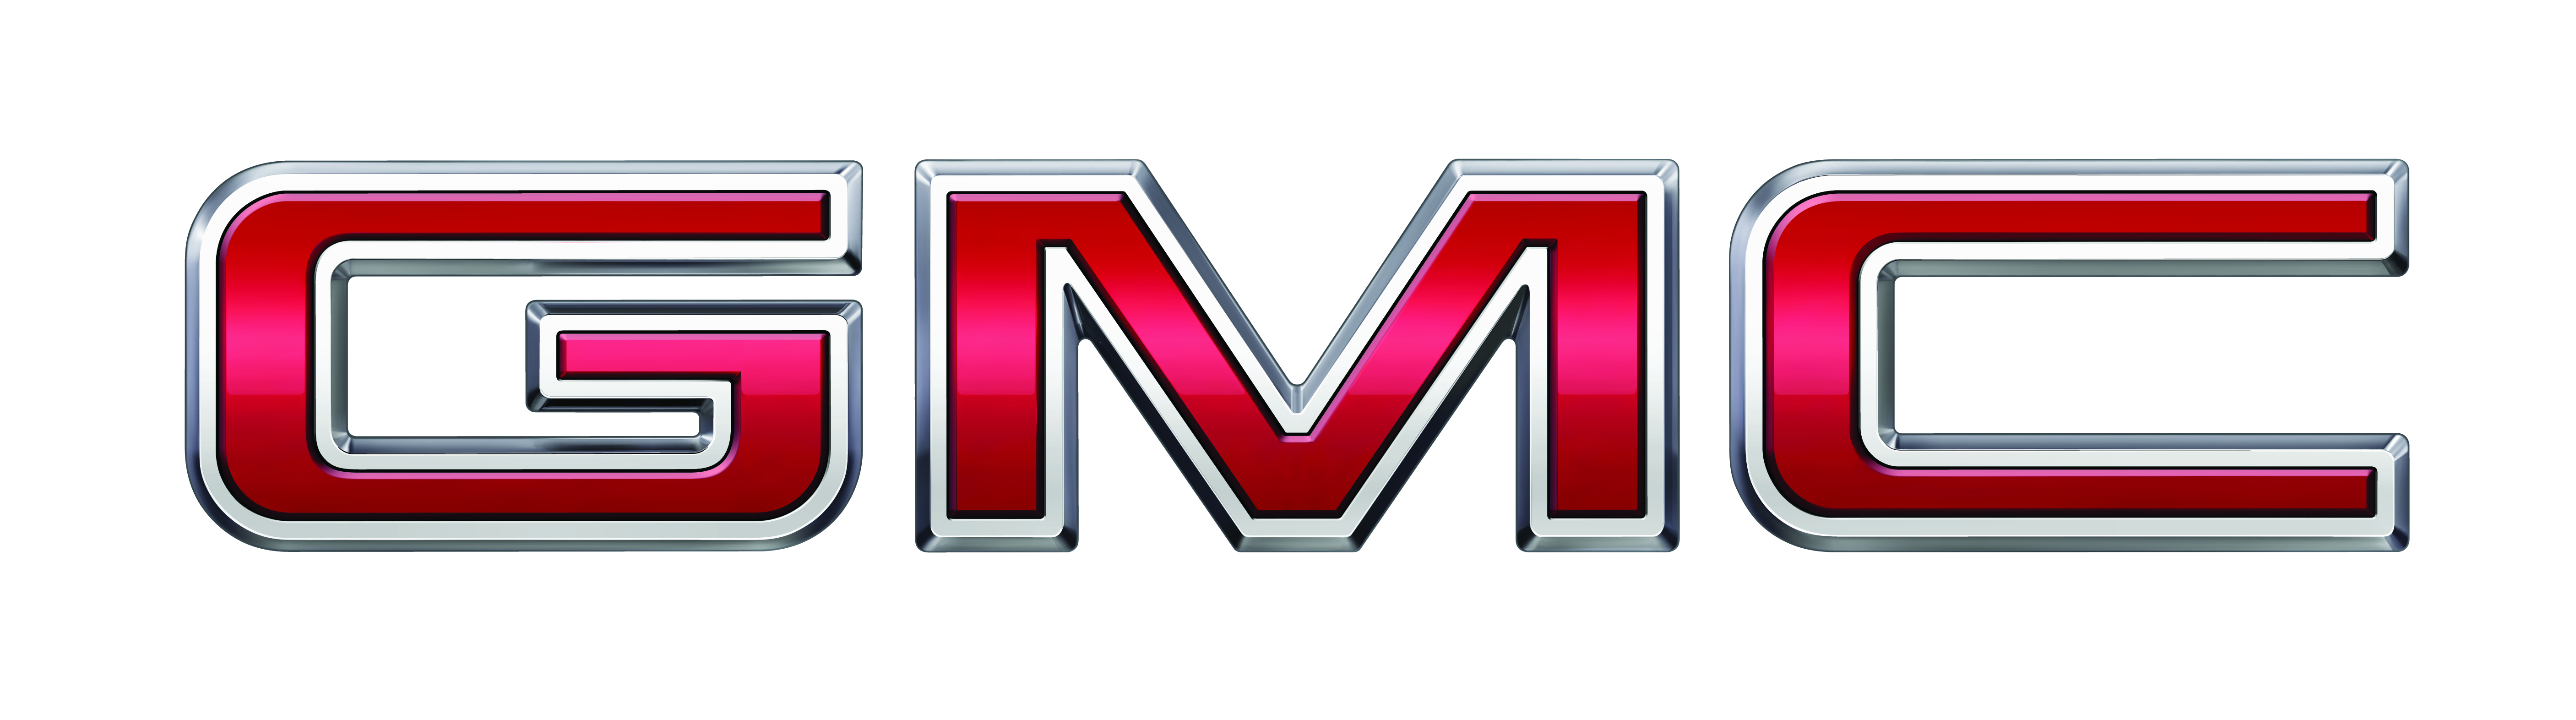 Gm financial logo clipart picture transparent GM Corporate Newsroom - United States - Images picture transparent